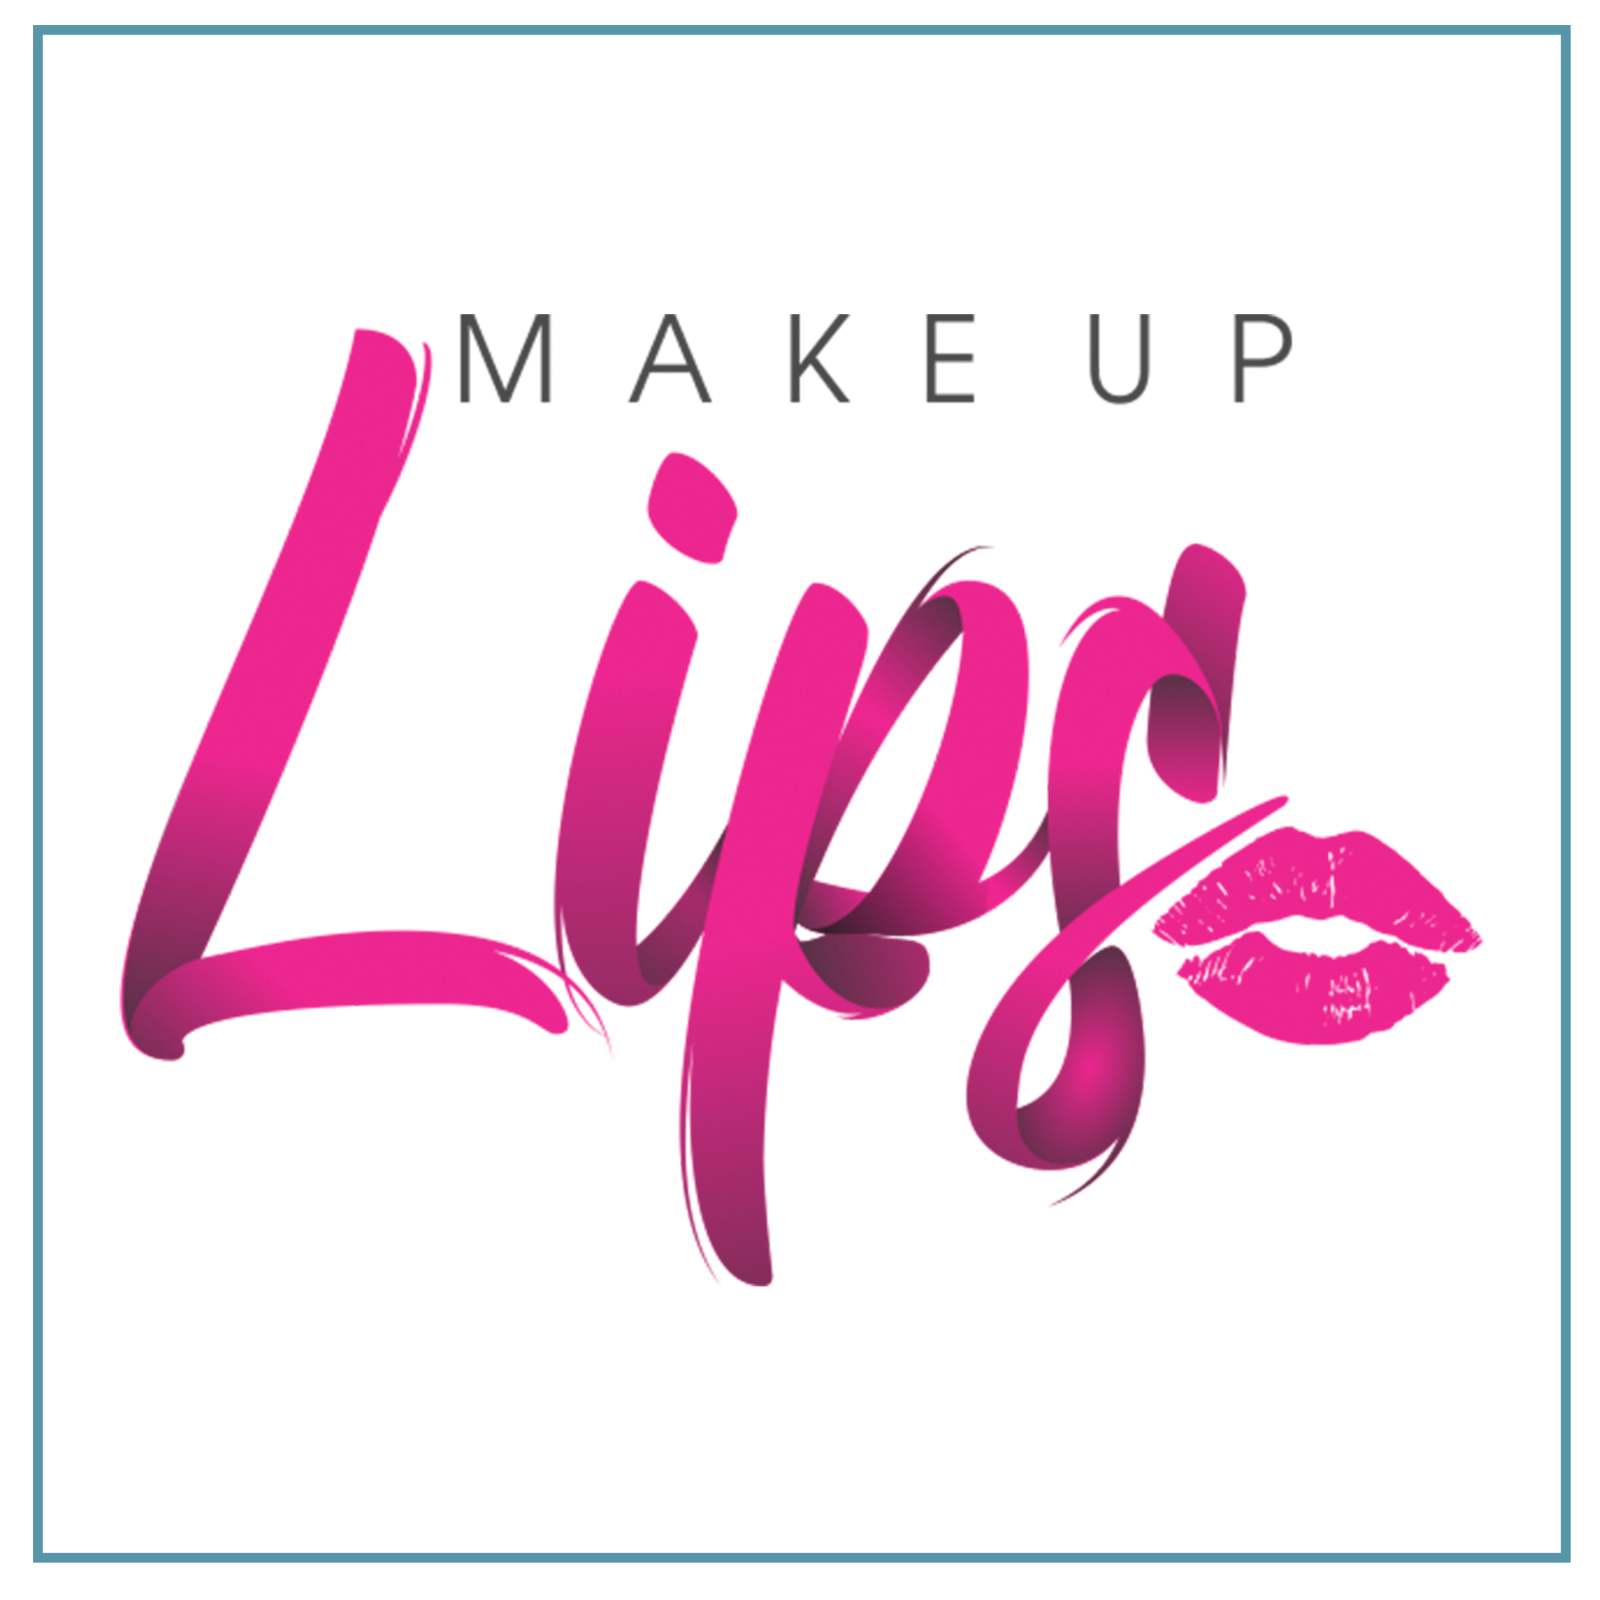 MAKE UP LIPS - MICROPIGMENTAÇÃO LABIAL - RB Kollors